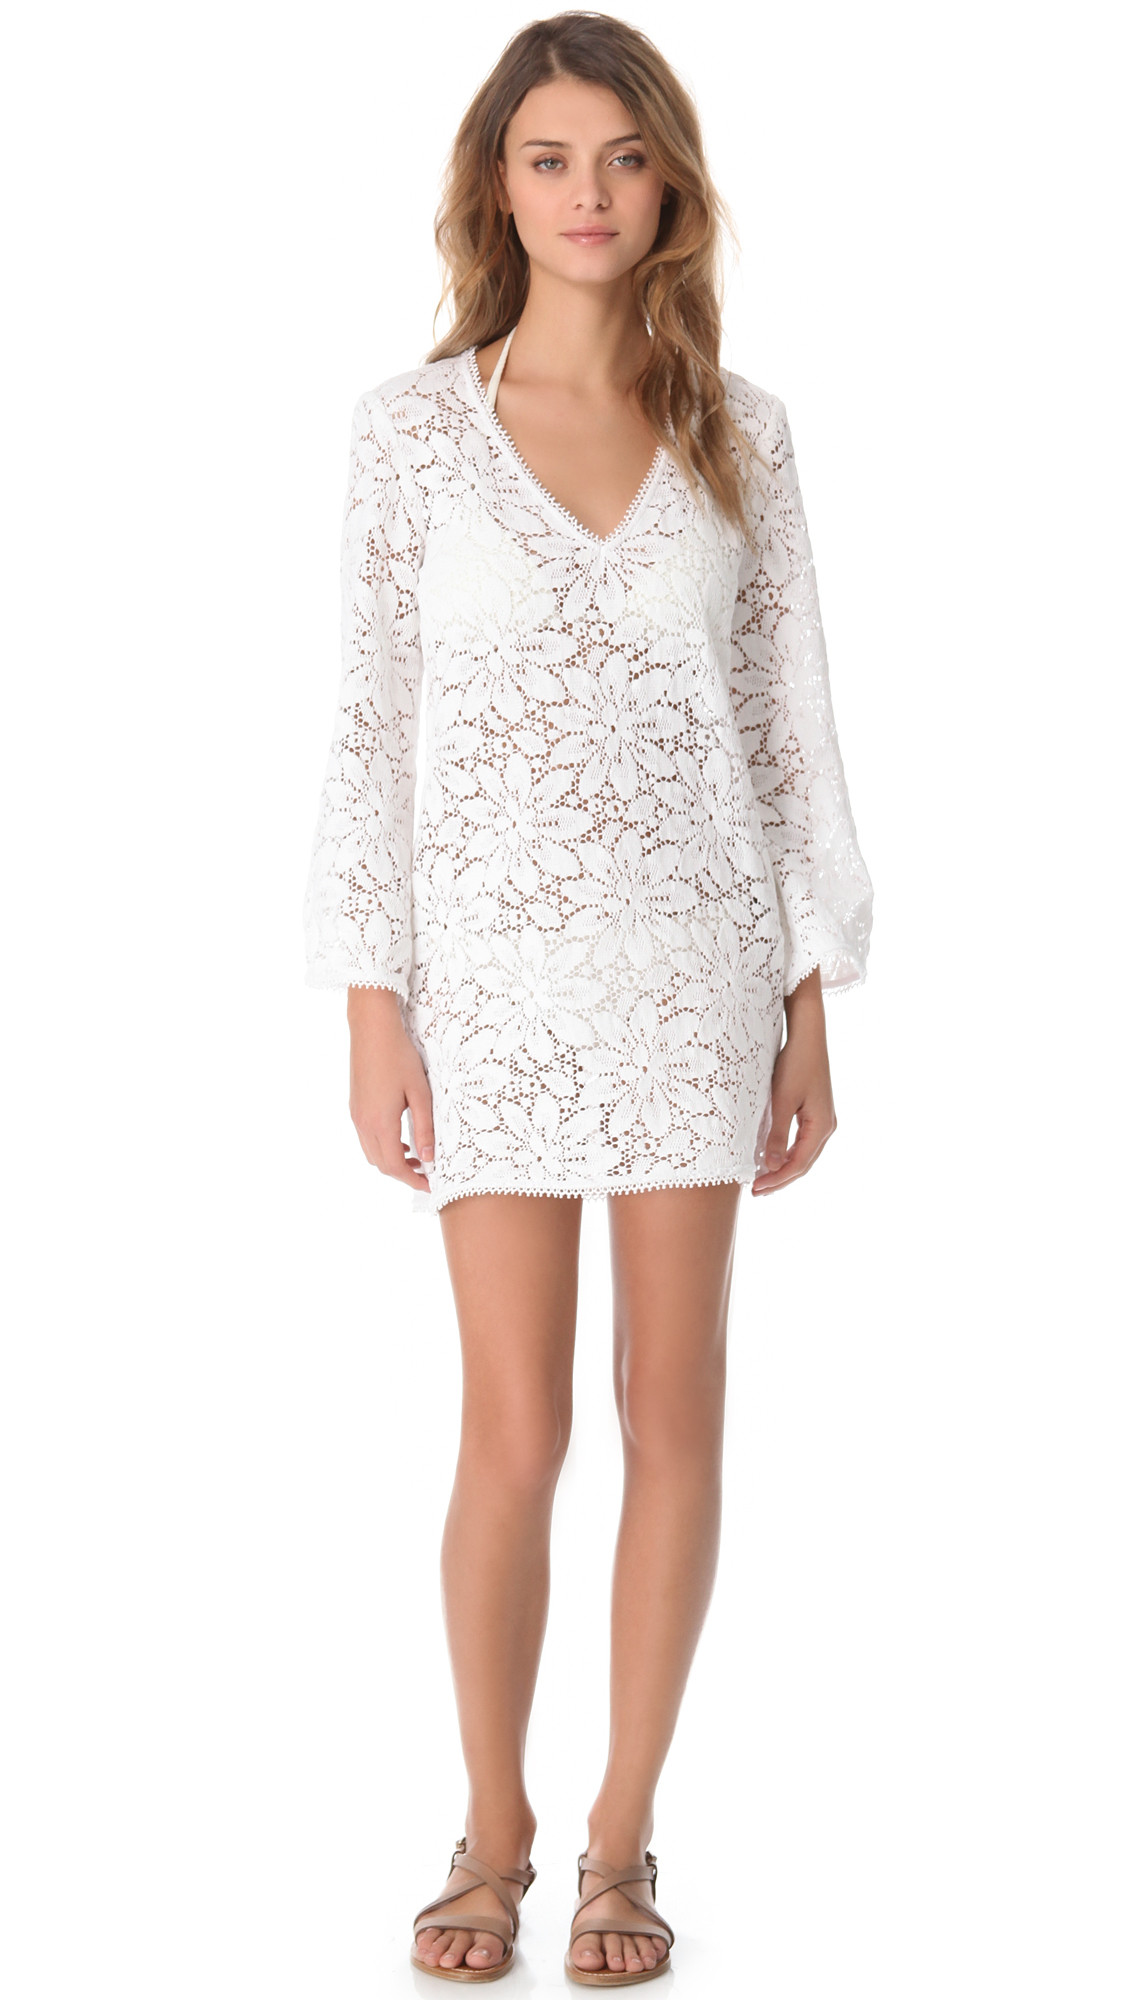 White Crochet Coverup Best Of Milly Mykonos Crochet Tunic Cover Up In White Of Unique 50 Models White Crochet Coverup